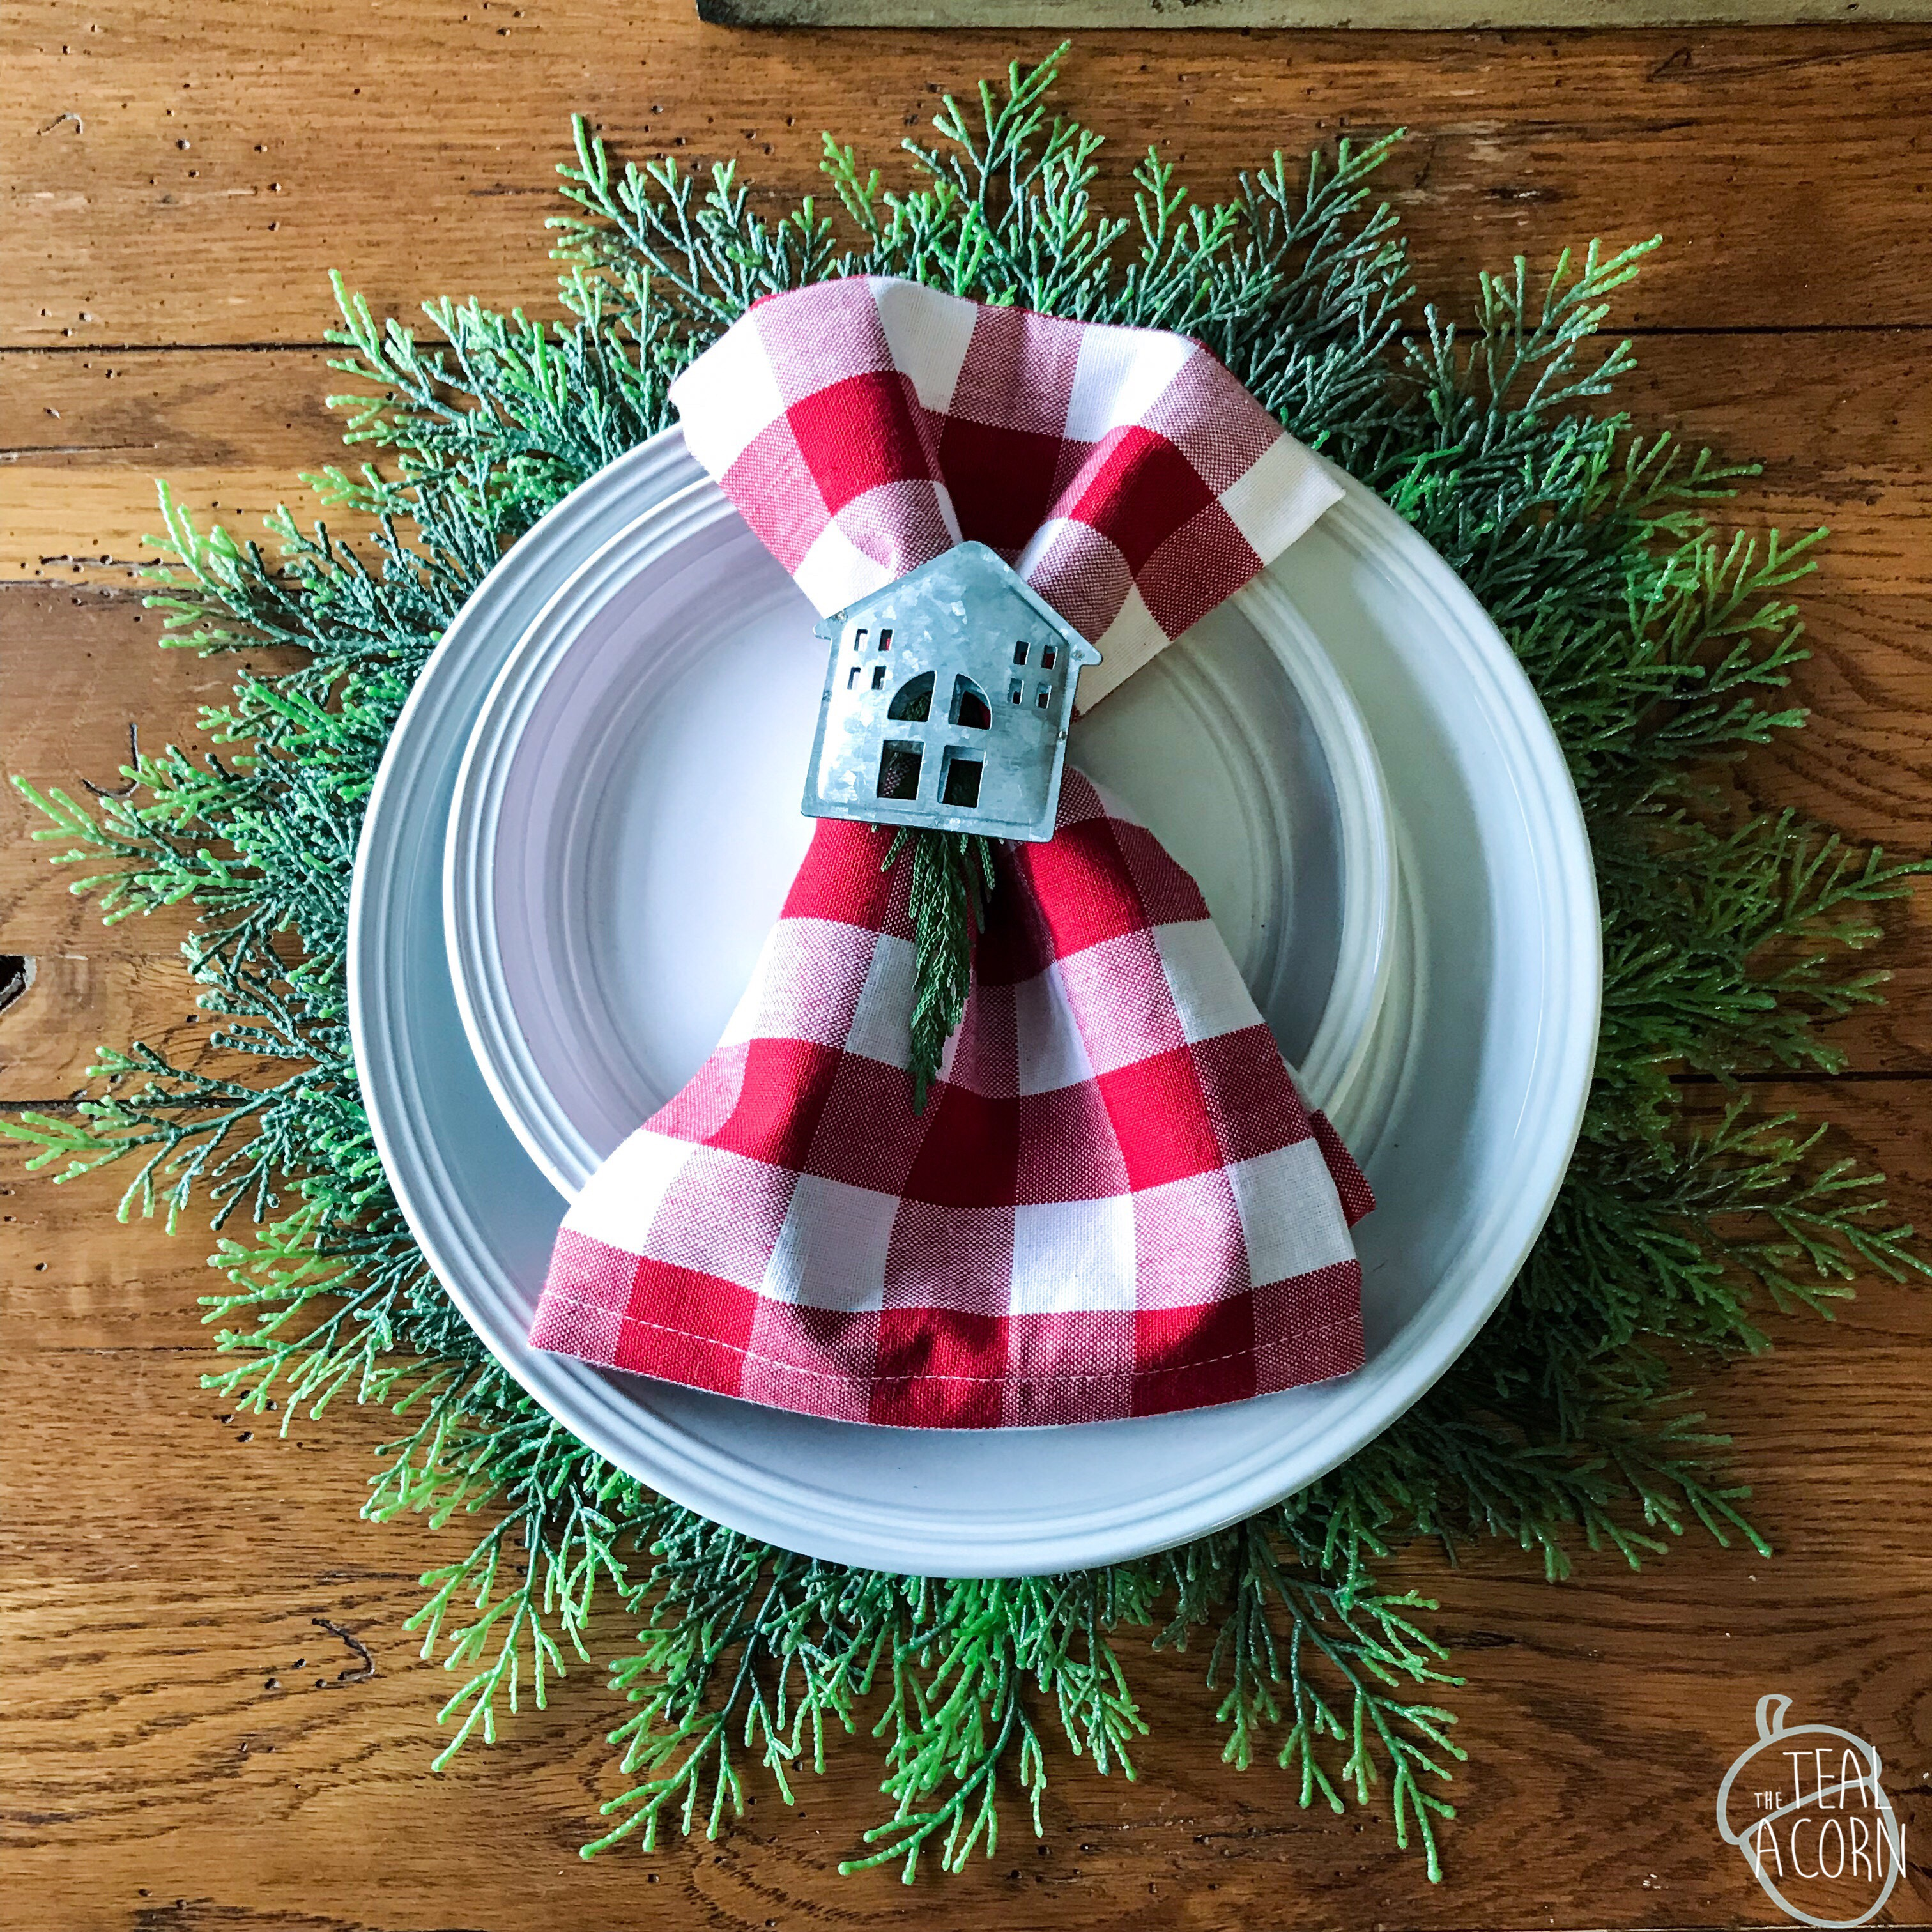 Place settings have Pier 1 cypress chargers, white plates, red and white Buffalo check plaid napkins and galvanized metal napkin rings.